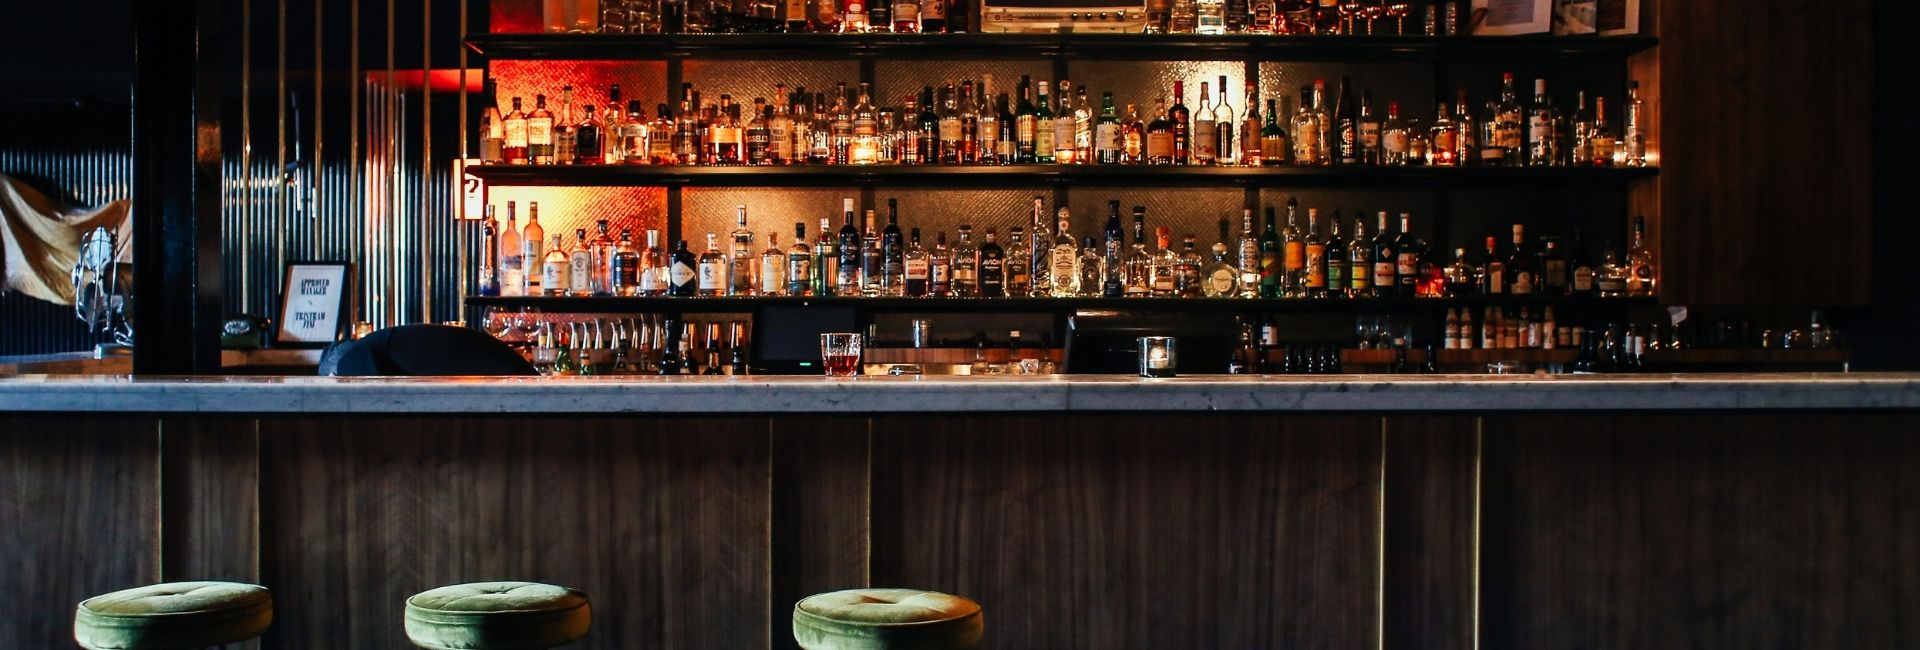 How to order whiskey at a bar?